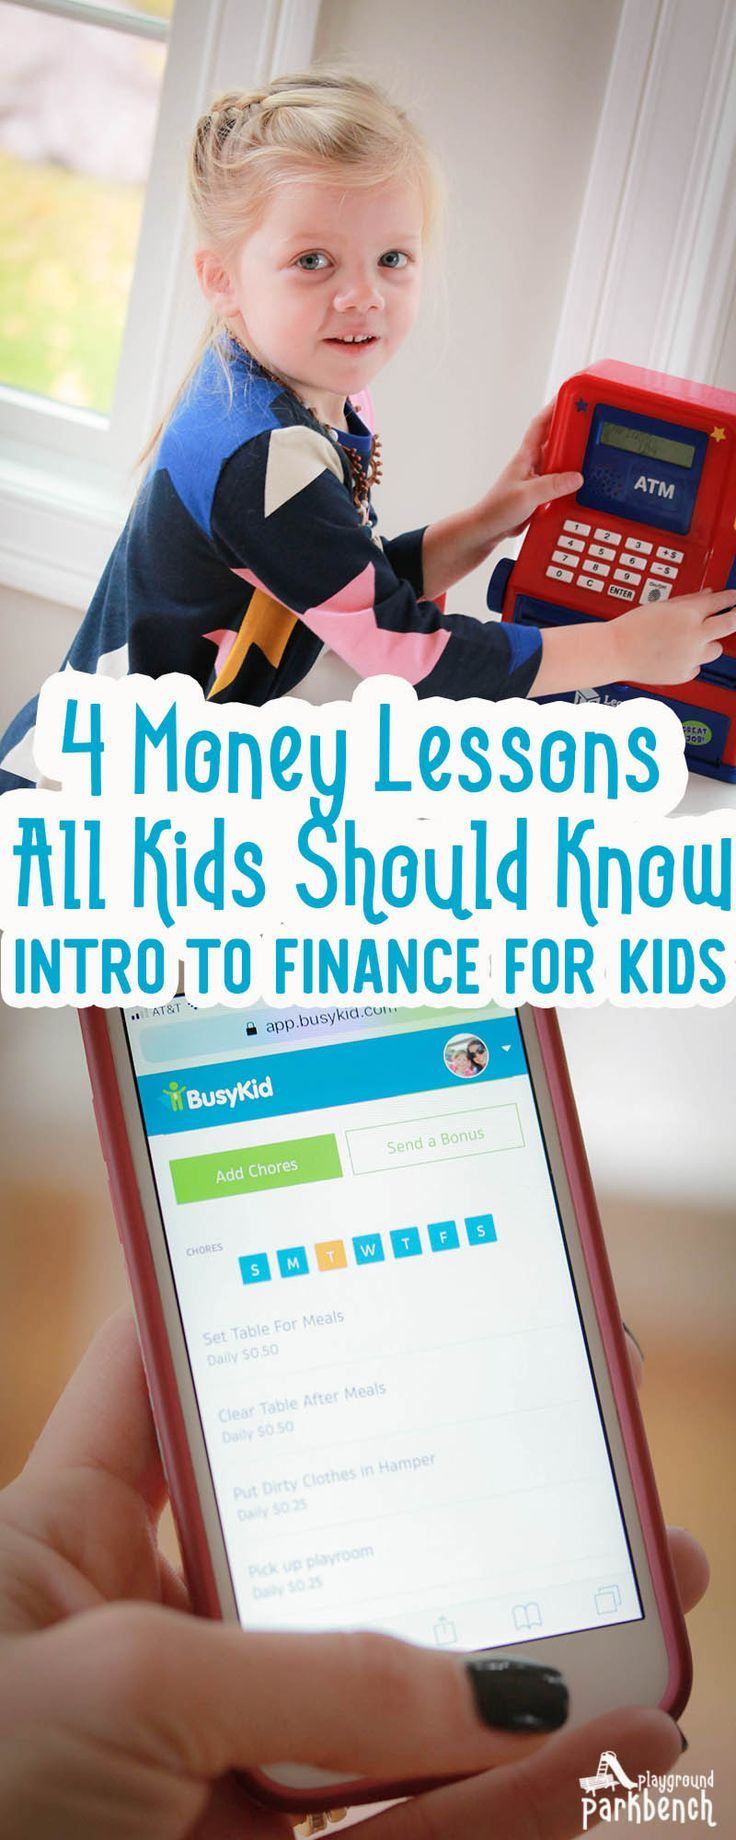 When should you start teaching your kids about money? And what should you teach them? #AD These 4 simple money lessons are the perfect introduction to finance for kids, and you can start as soon as they are old enough to count | Family Finances | Preschool | Kindergarten | Allowances | #familyfinances #ForKids